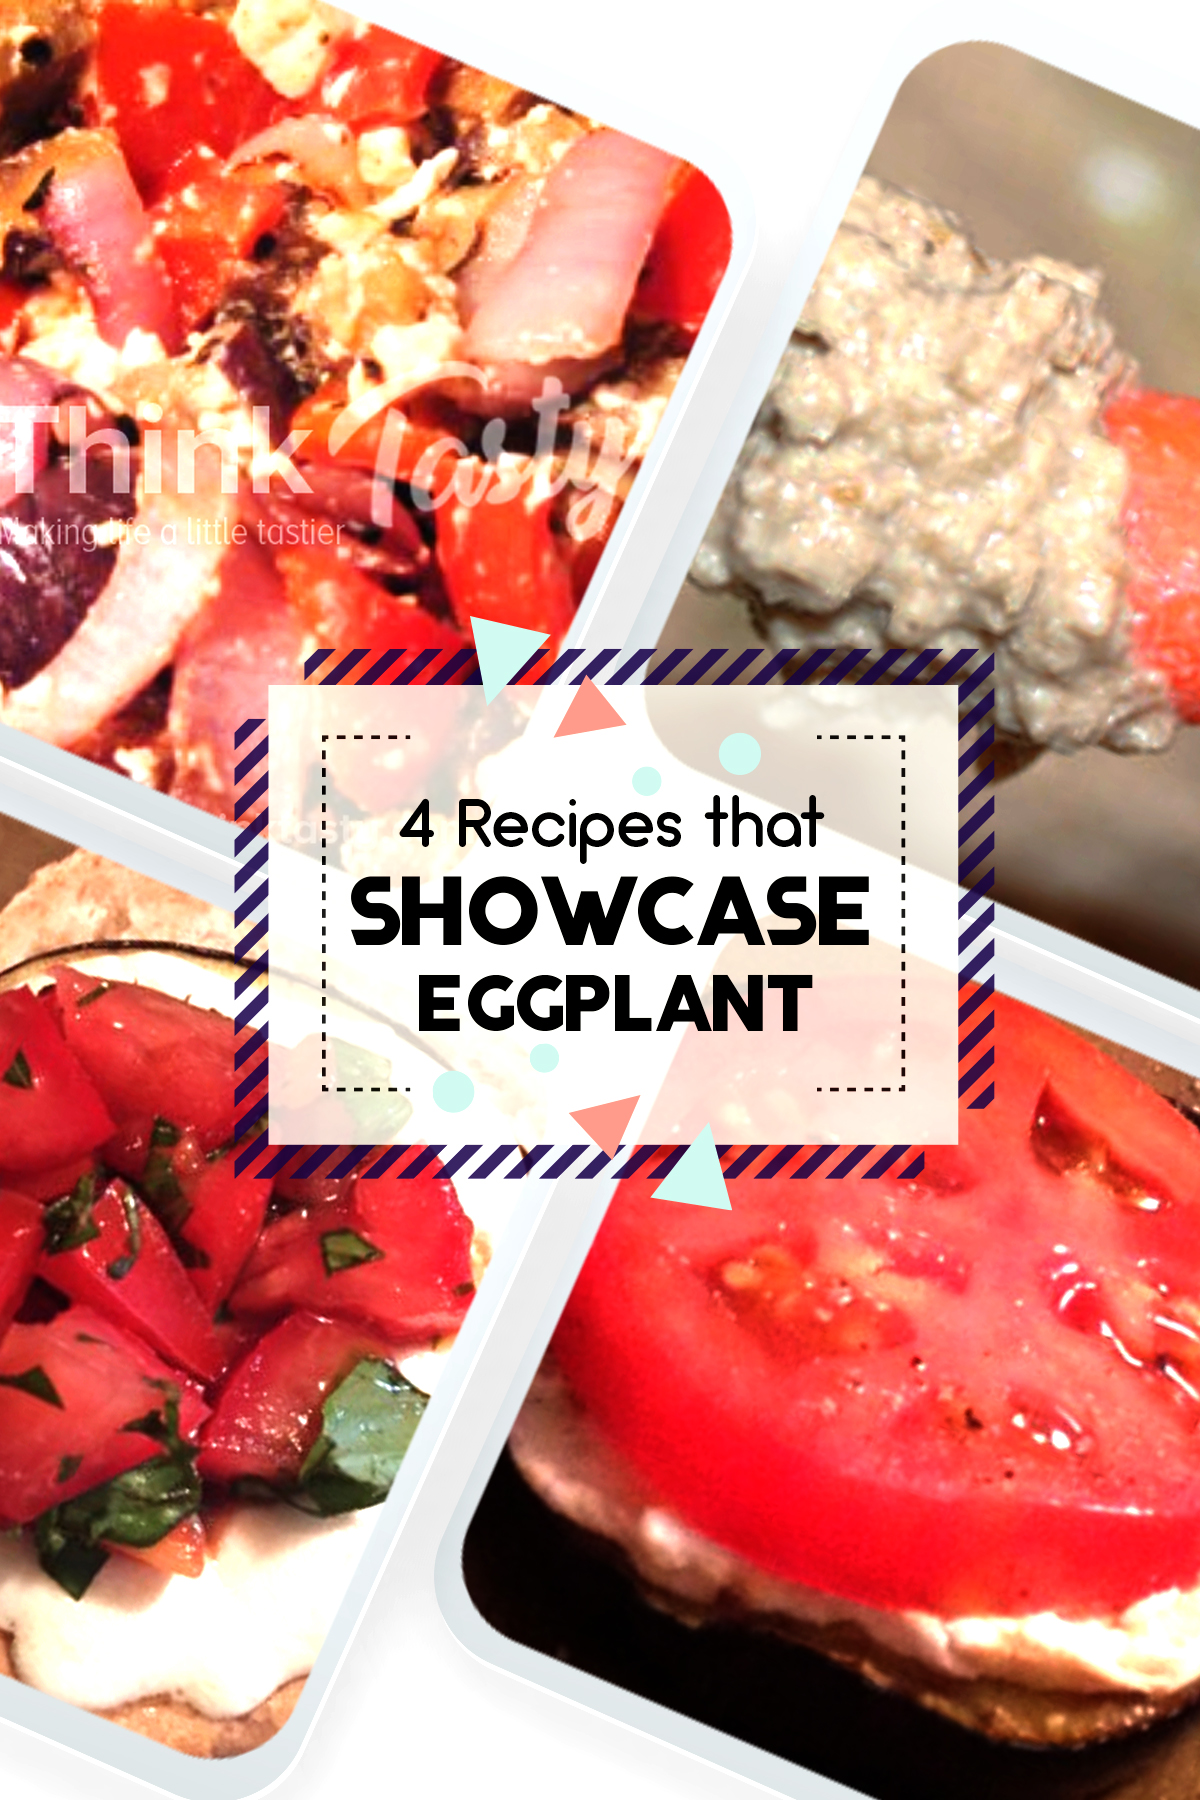 Eggplant Salsa, Baba Ghanoush, Grilled Eggplant Parmesan Sandwich, and Warm Eggplant & Goat Cheese are 4 great ways to cook with eggplant